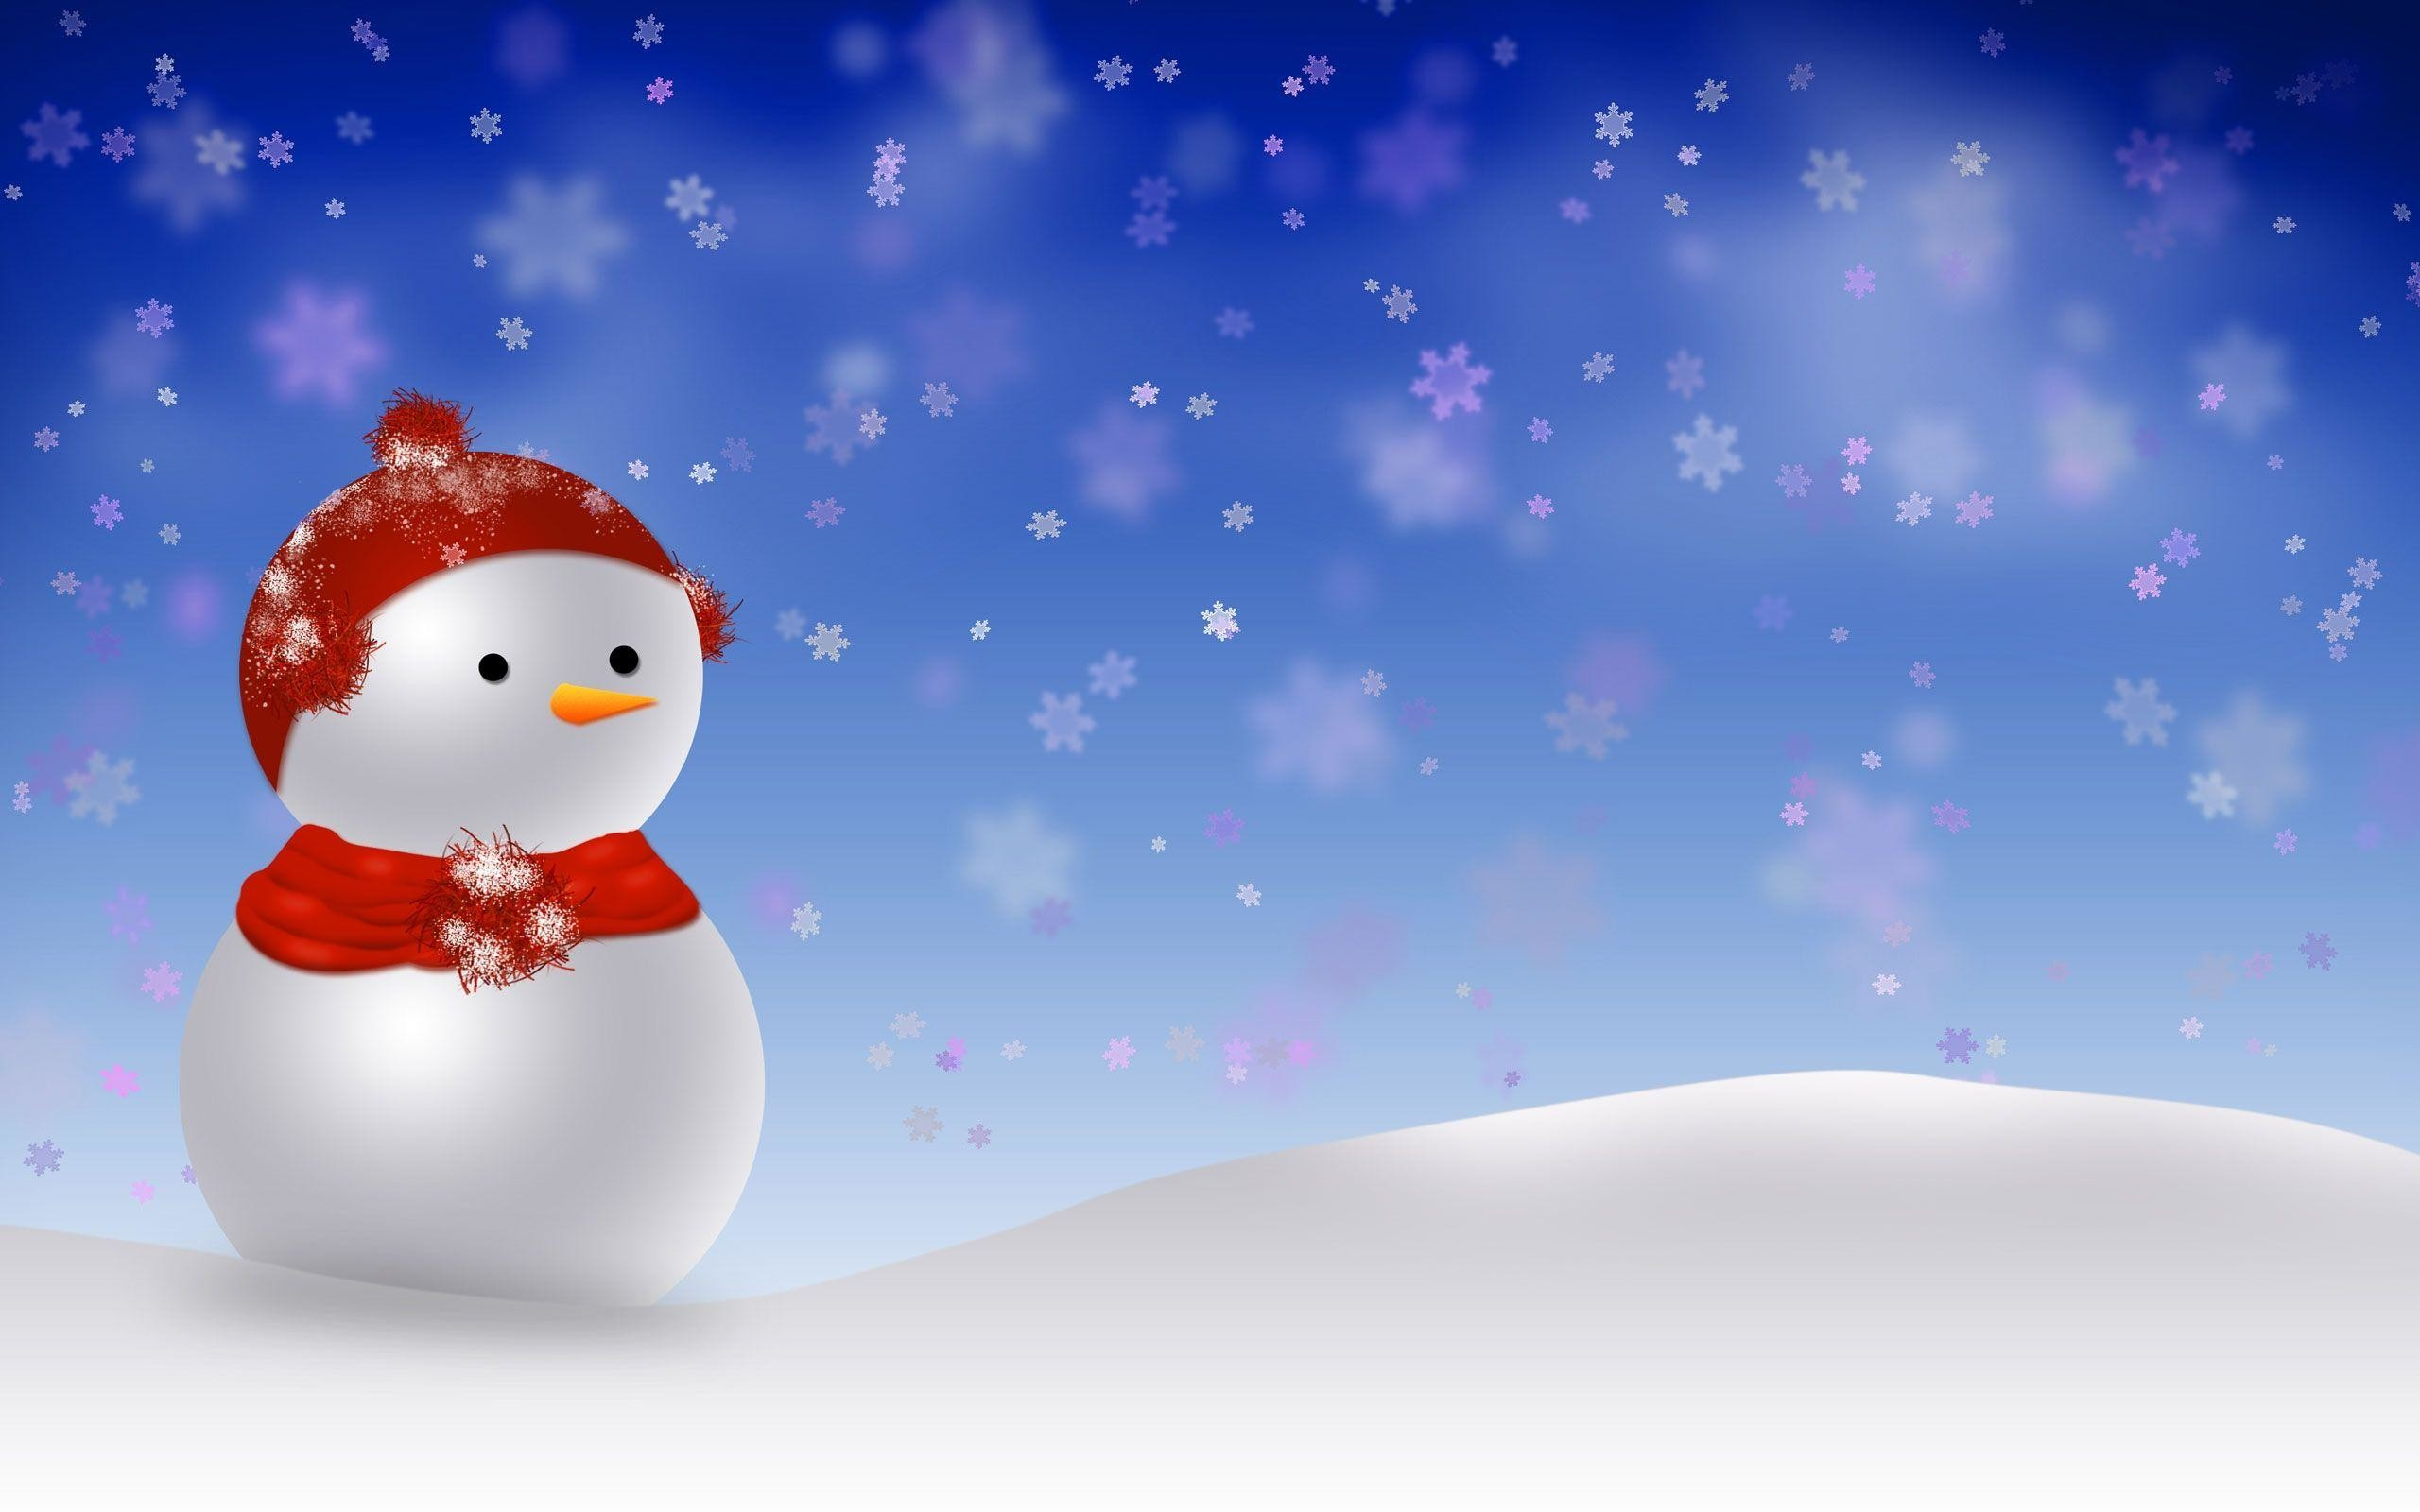 2560x1600 Cute Animated Merry Christmas Desktop Background Wallpaper .